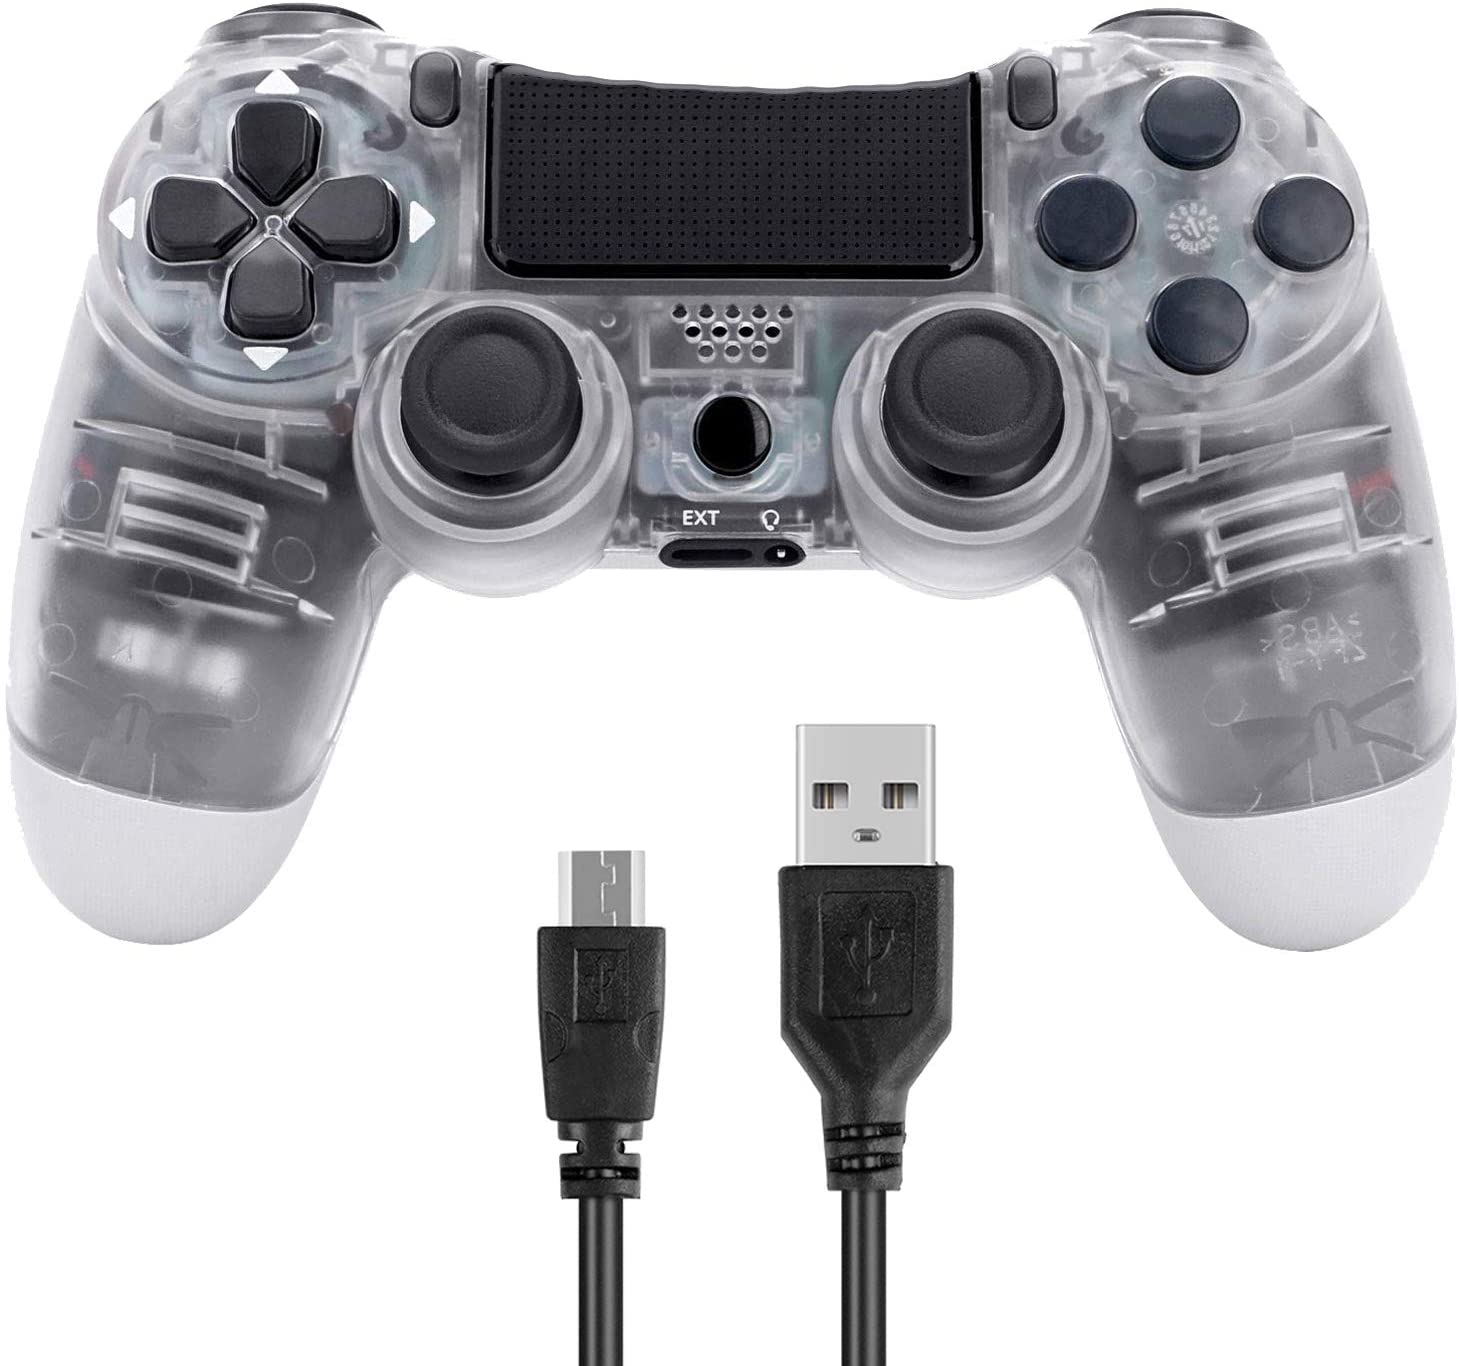 Poulep Wireless Controller for PS4 Playstation 4 Dual Shock (New Model, ClearWhite)